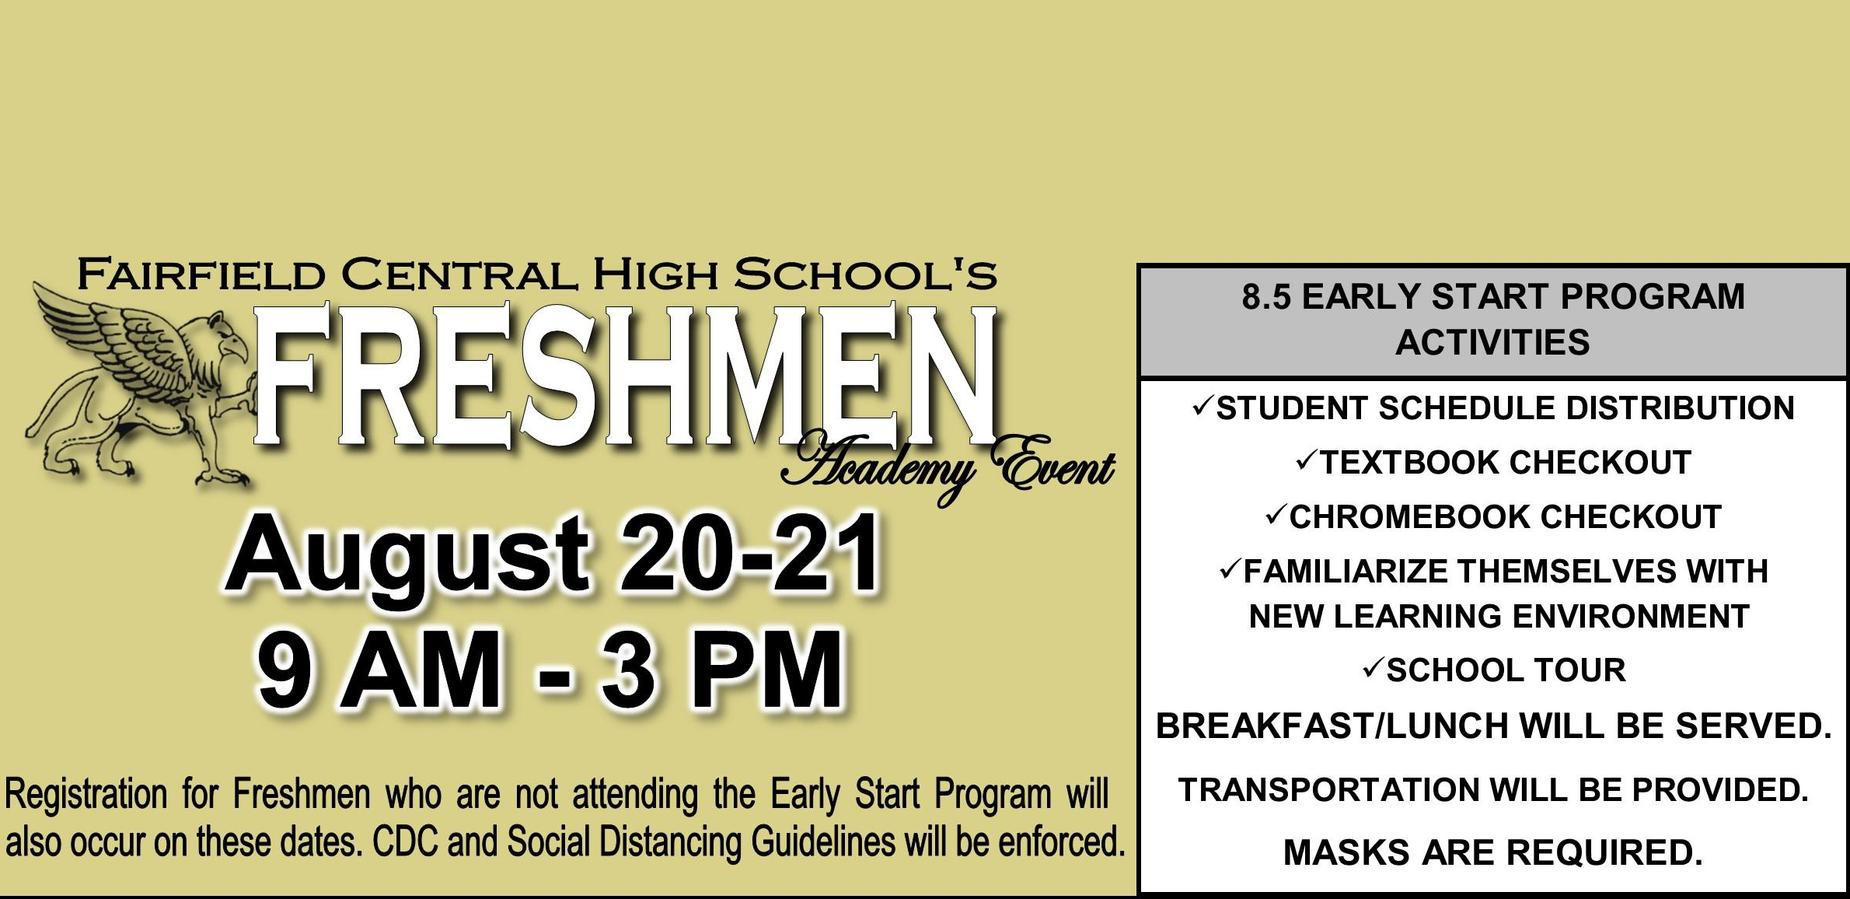 FCHS Freshmen Academy Event; August 20-21 [9 AM-3 PM]; 8.5 Early Start Program Activities; STUDENT SCHEDULE DISTRIBUTION TEXTBOOK CHECKOUT CHROMEBOOK CHECKOUT FAMILIARIZE THEMSELVES WITH       NEW LEARNING ENVIRONMENT SCHOOL TOUR BREAKFAST/LUNCH WILL BE SERVED. TRANSPORTATION WILL BE PROVIDED. MASKS ARE REQUIRED. Registration for Freshmen who are not attending the Early Start Program will  also occur on these dates. CDC and Social Distancing Guidelines will be enforced.